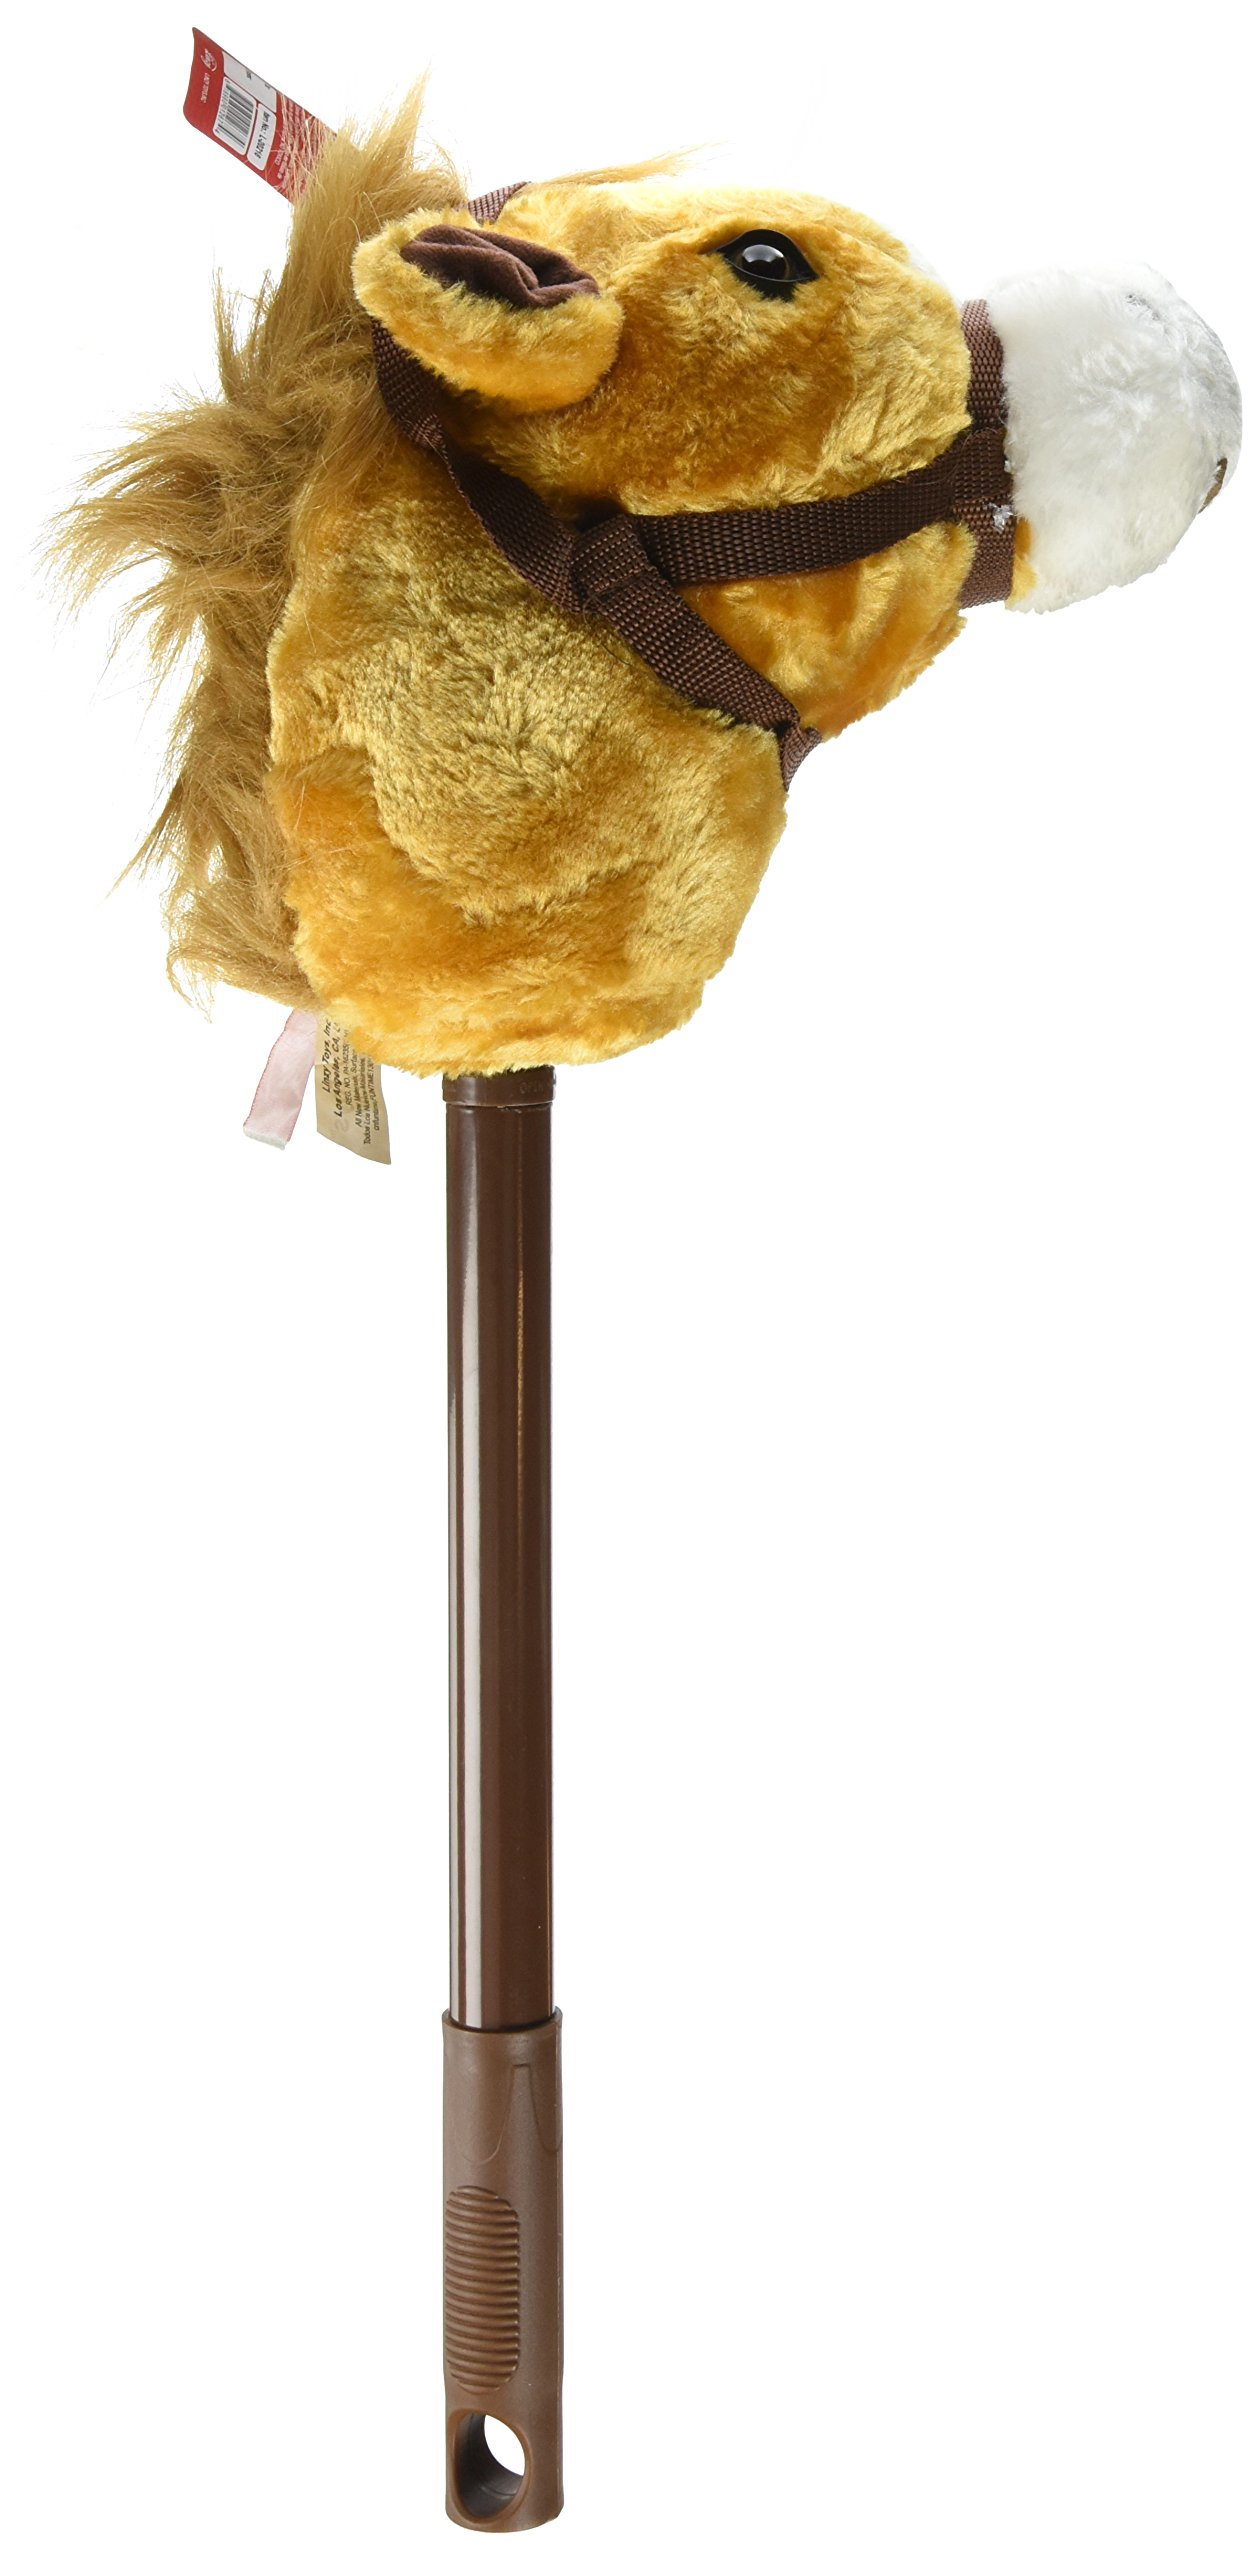 Adjustable Beige Stick Horse - Adjustable to Three Heights: 21'', 28'' and 36'' Twist & Lock System & Horse Makes Sound!